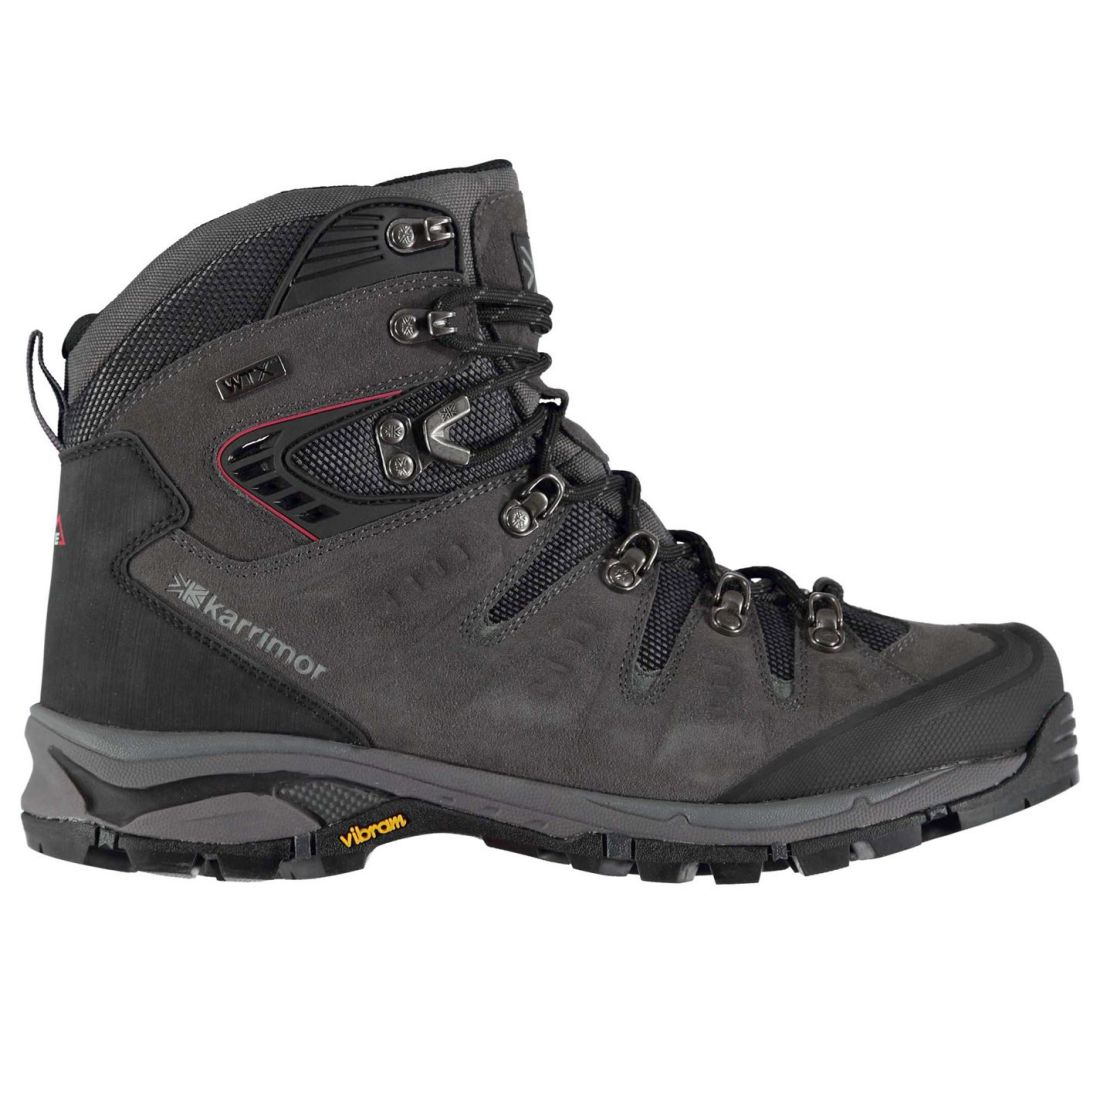 Karrimor Leopard Walking Boots Mens Gents Laces  Fastened Ventilated Water  shop online today